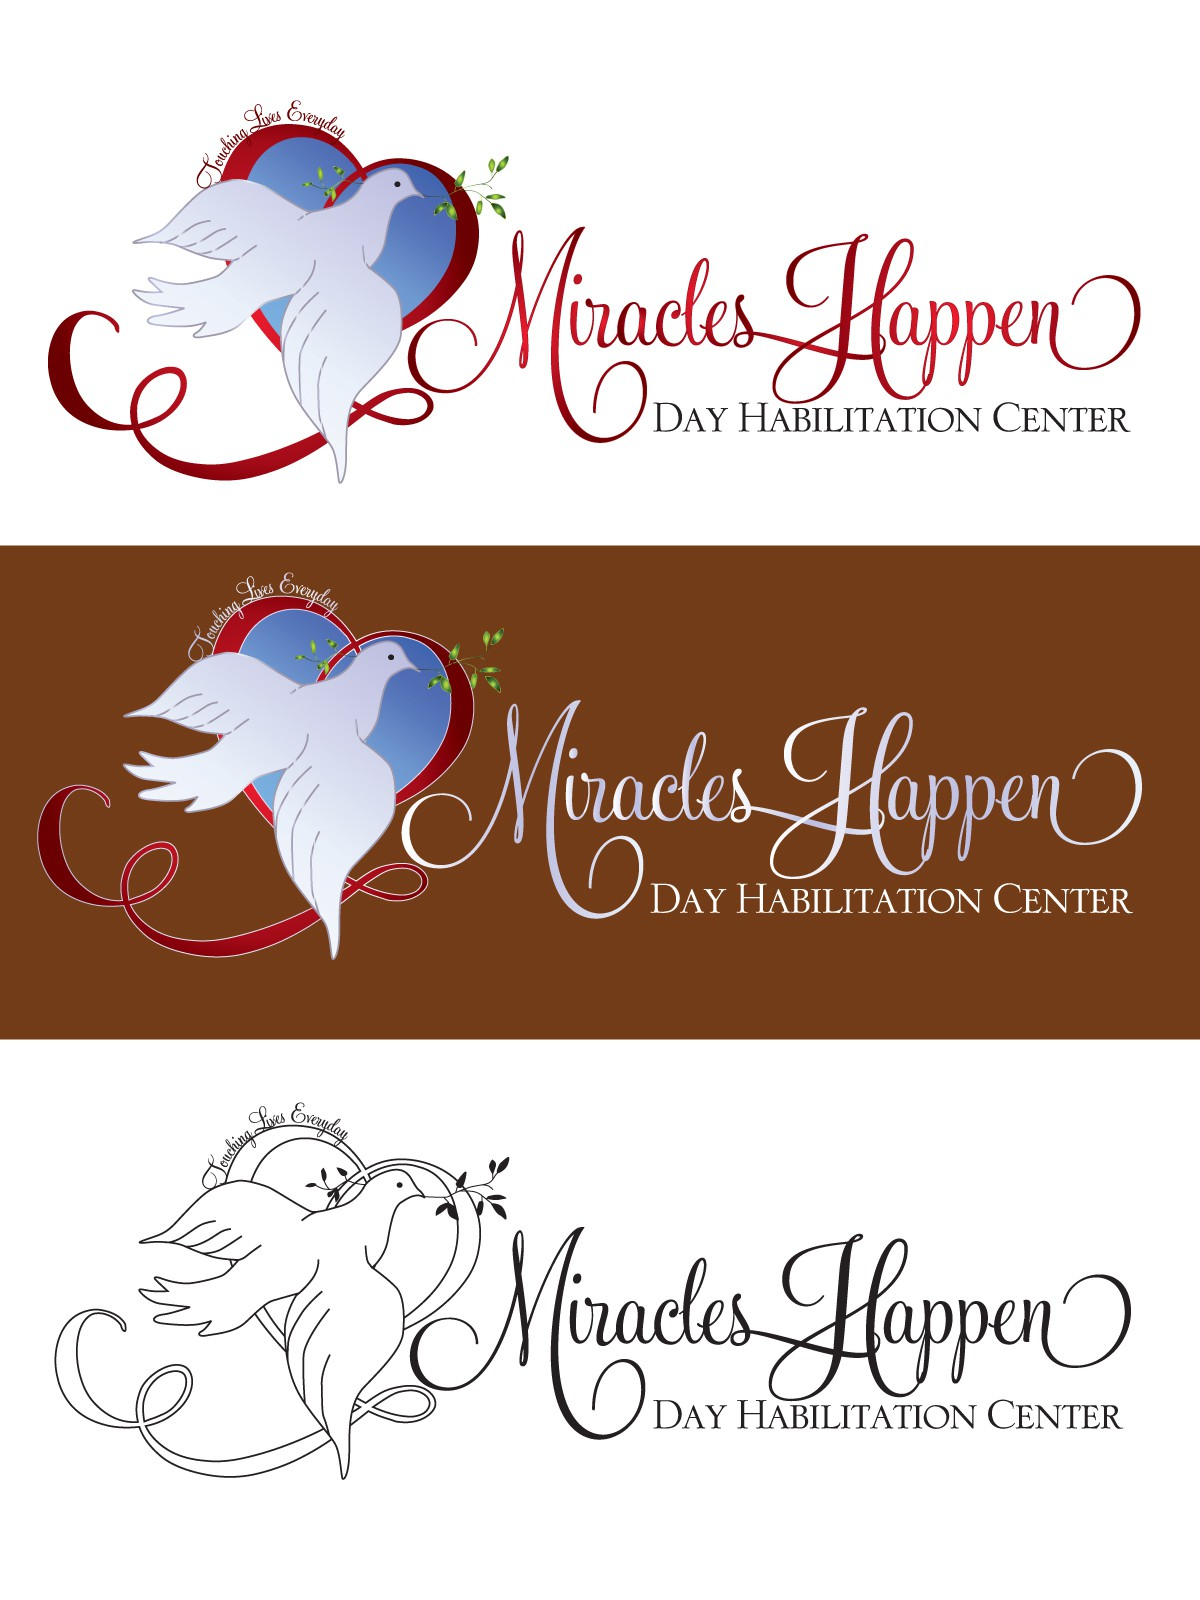 Miracles Happen Day Habilitation Center needs a new logo